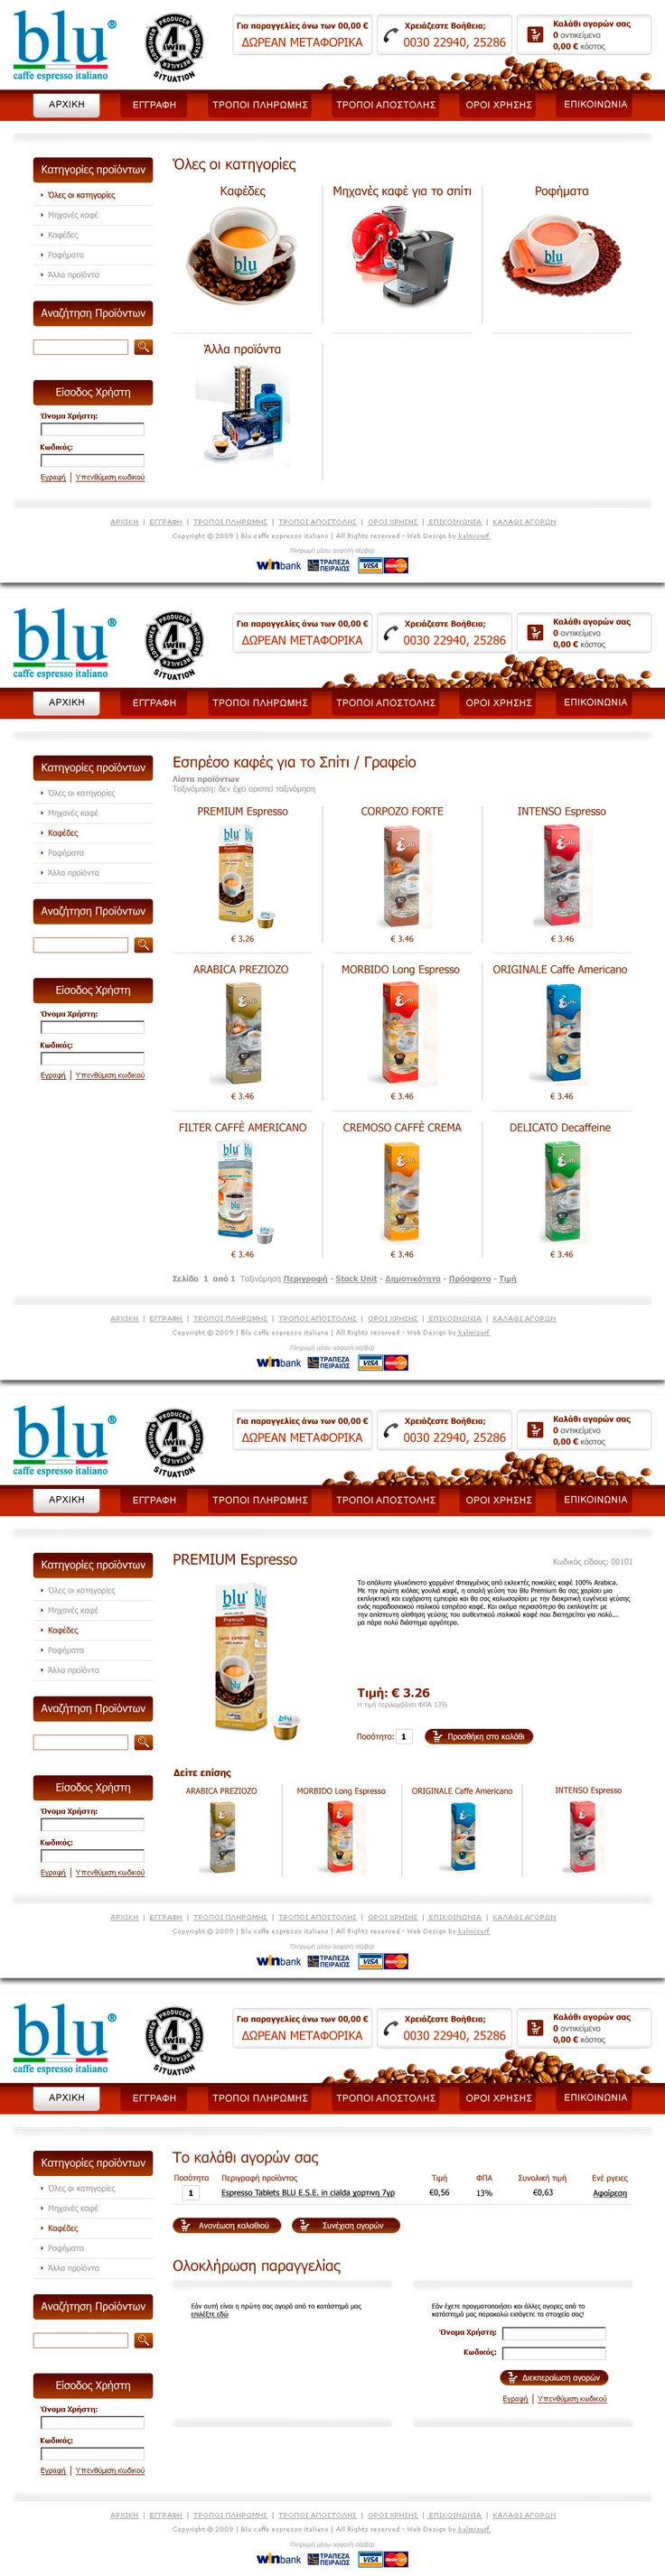 Web layout design in photoshop for Blu Caffe eshop